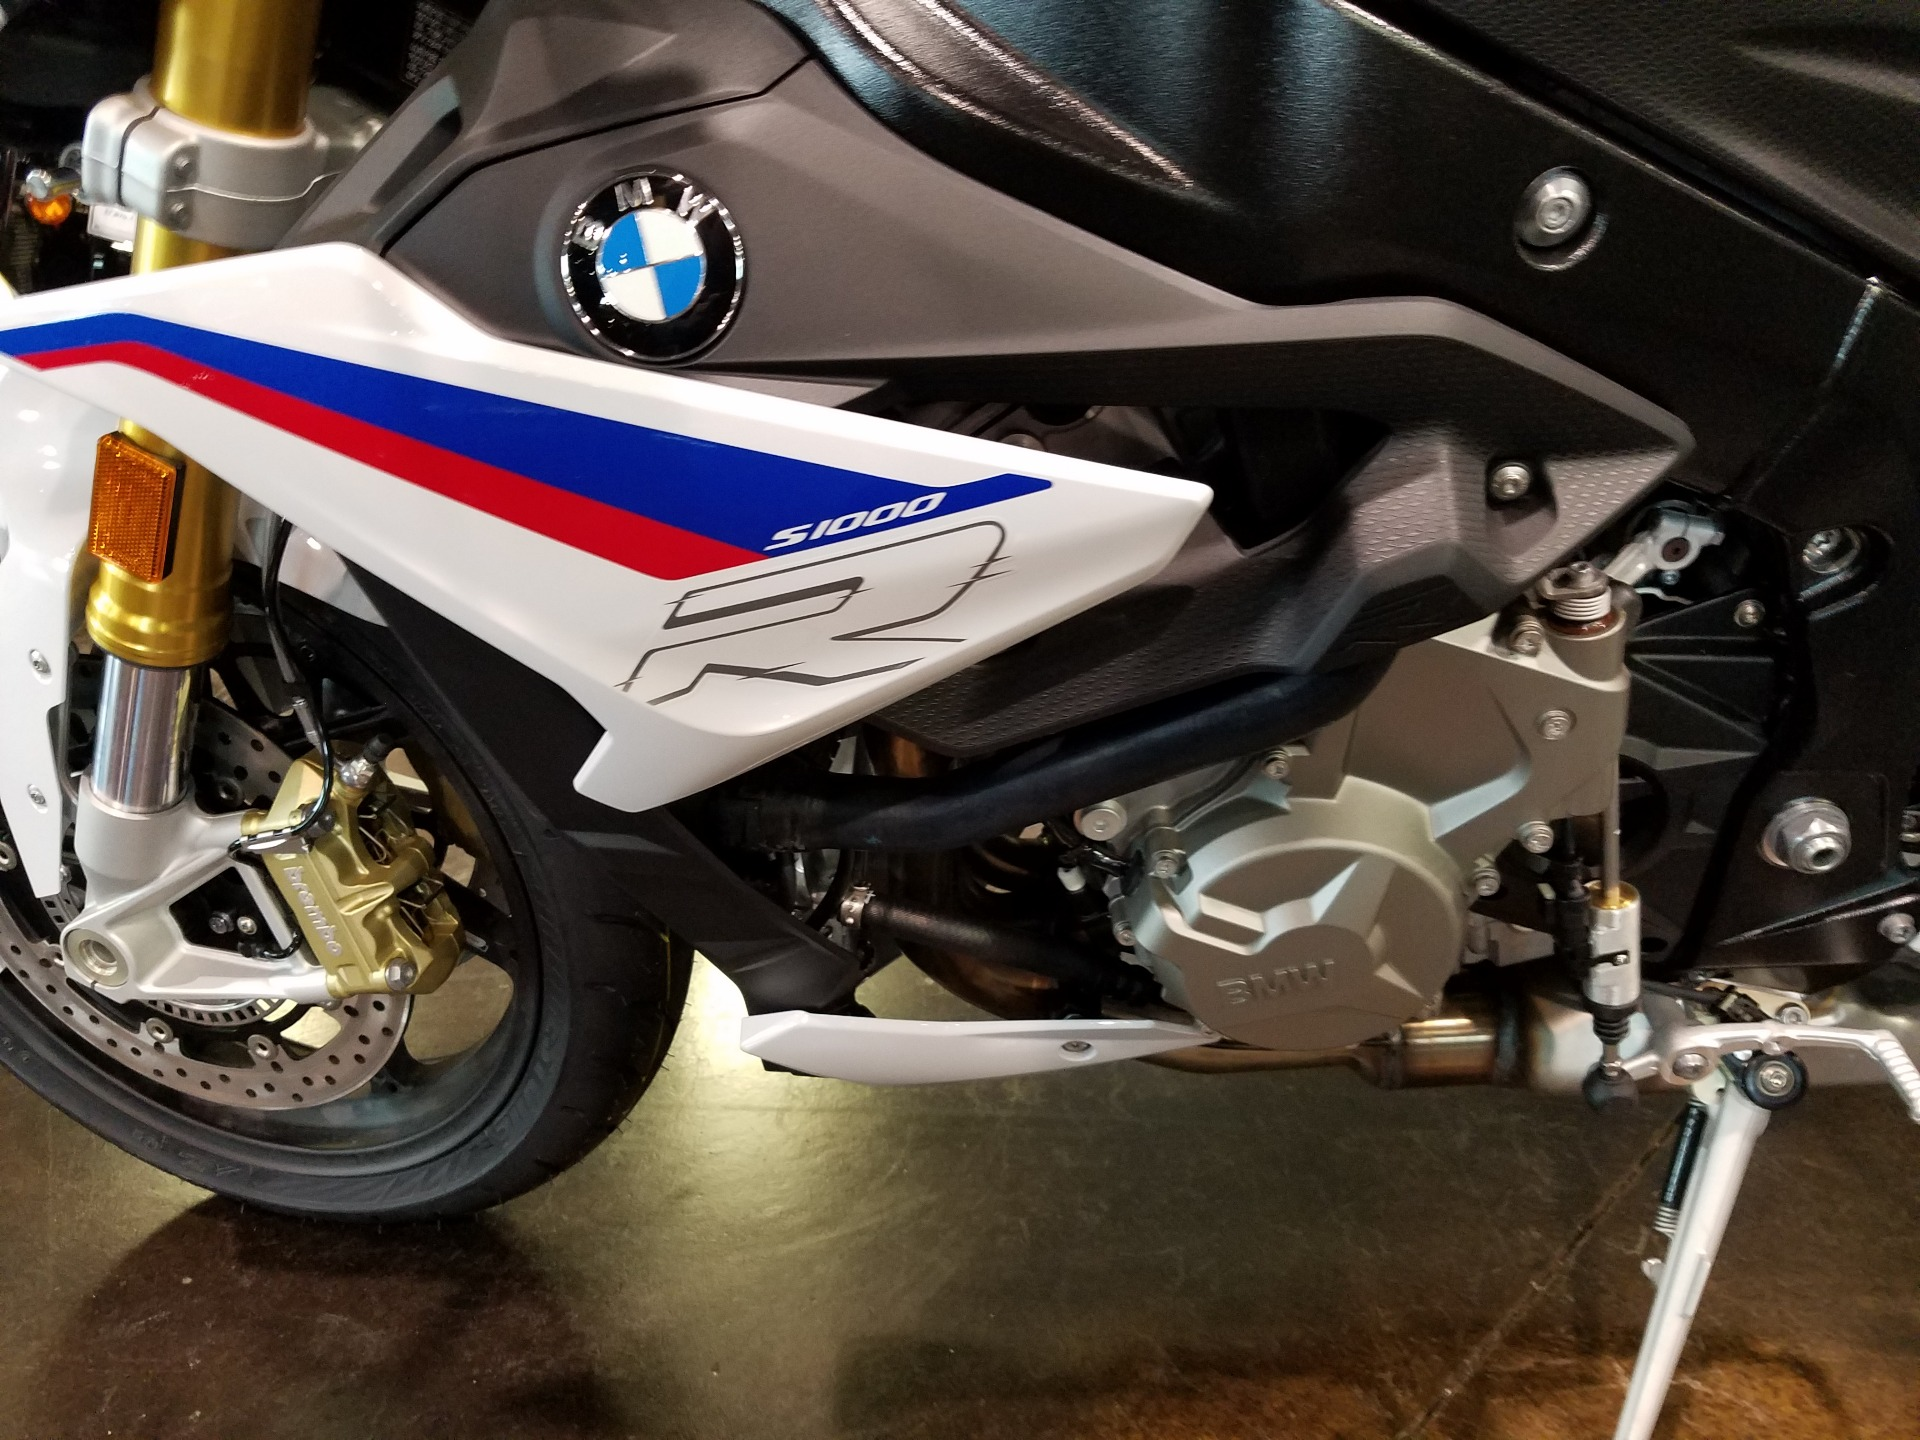 2019 Bmw S 1000 R Motorcycles Saint Charles Illinois